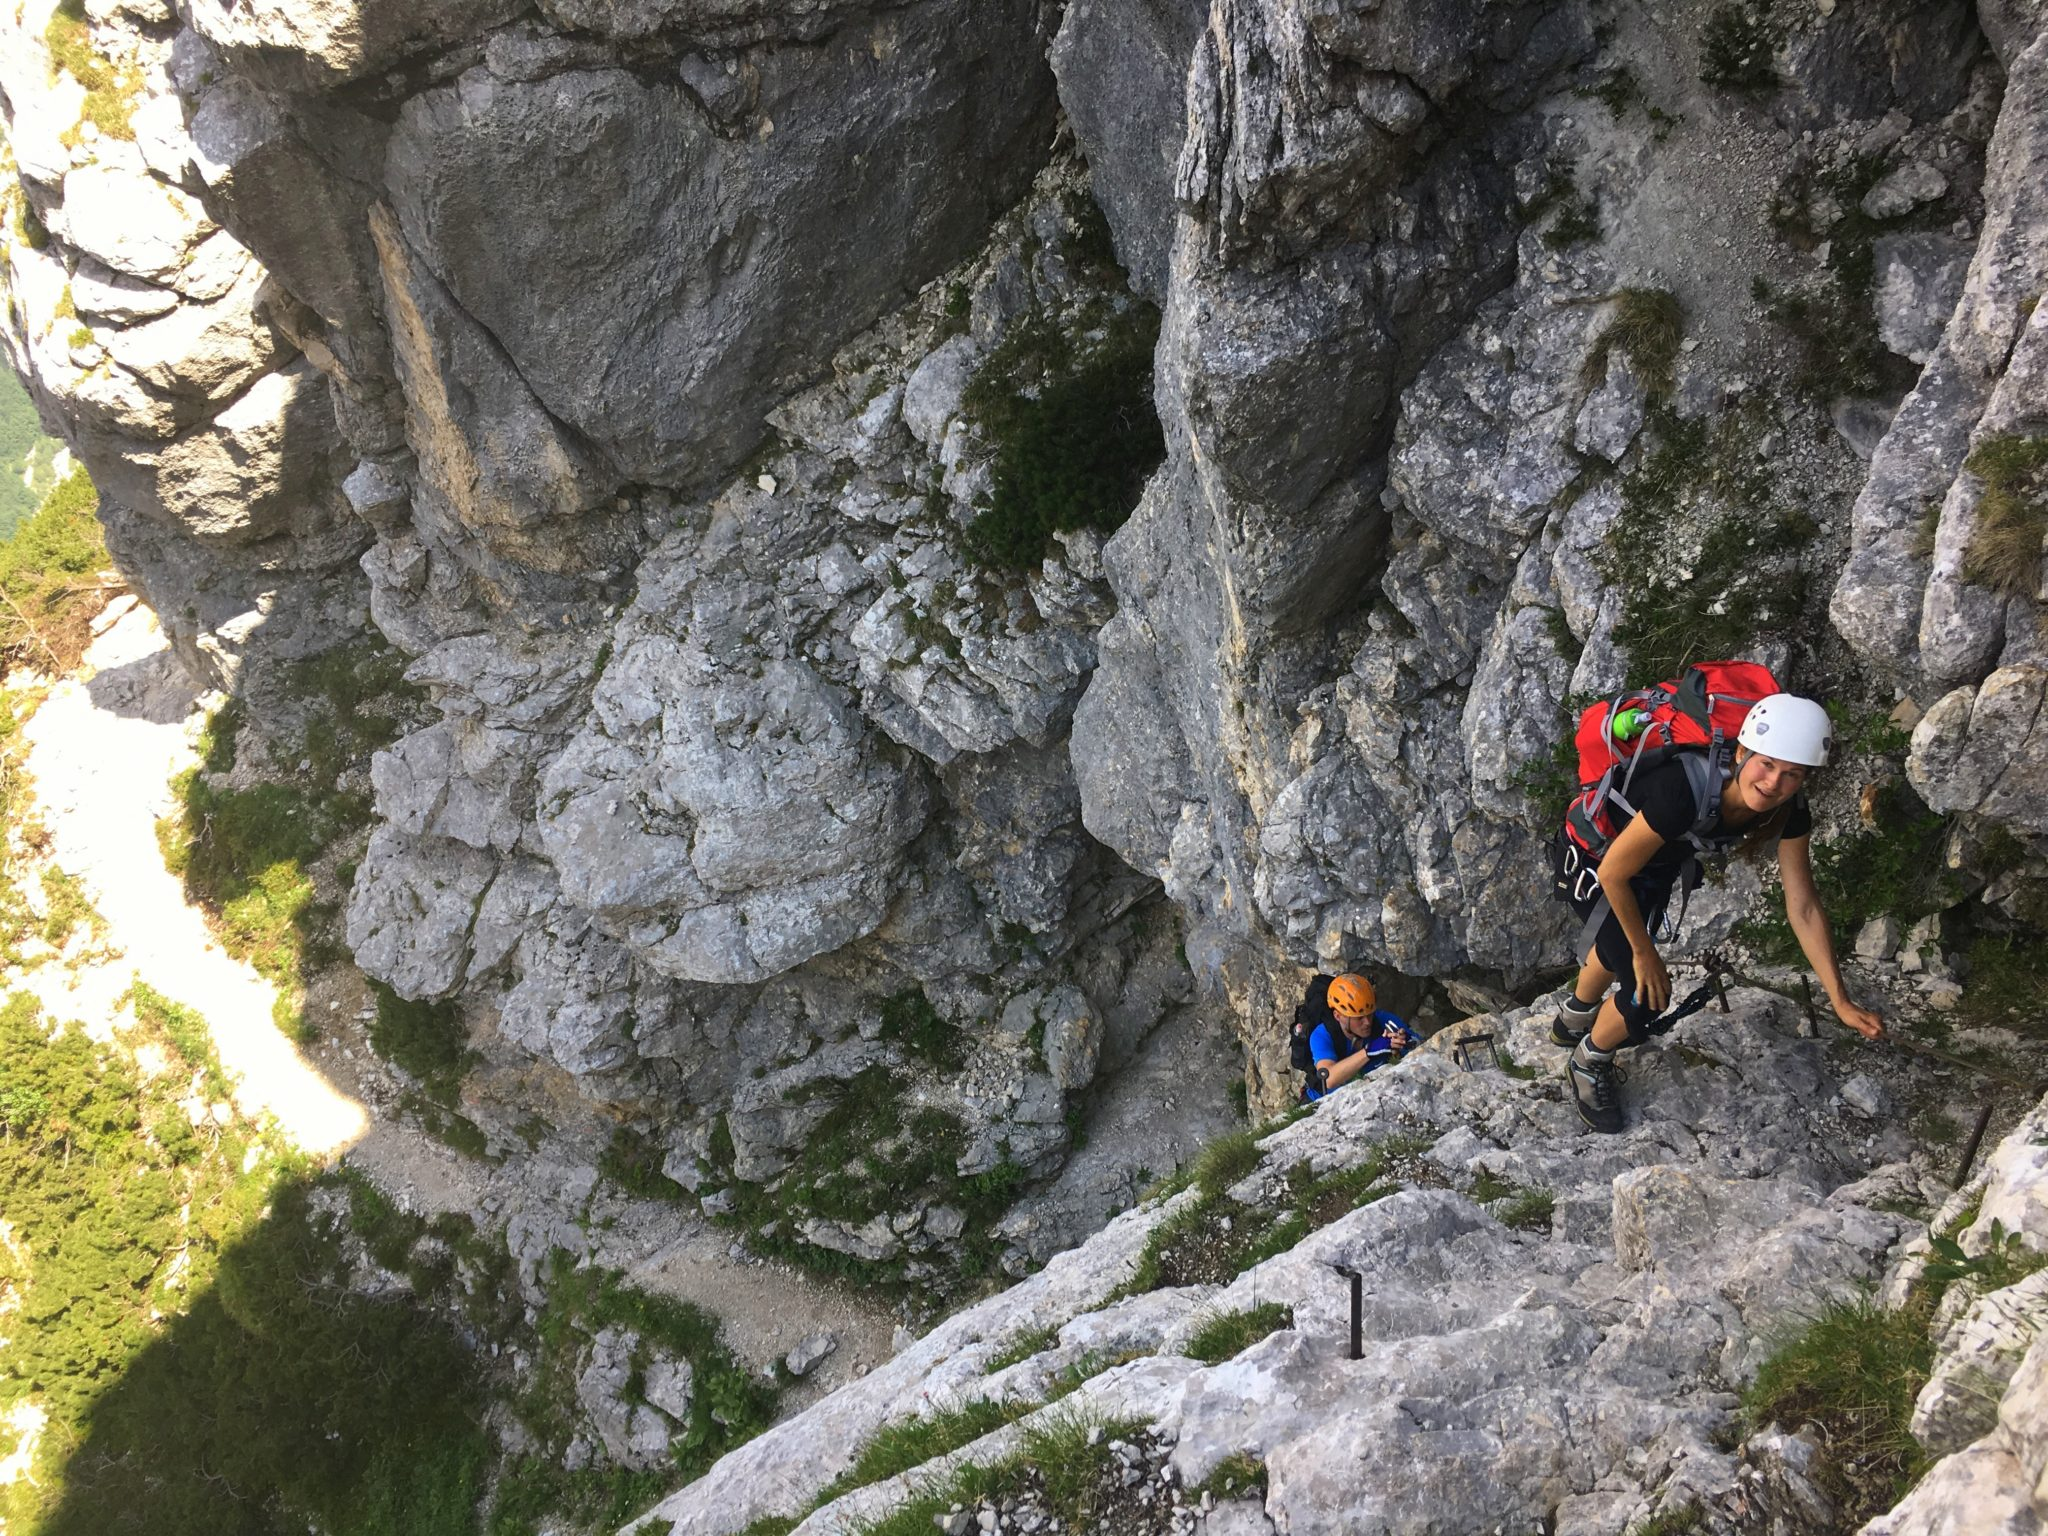 The hardest part of the Prag route - a 20-meter vertical climb.